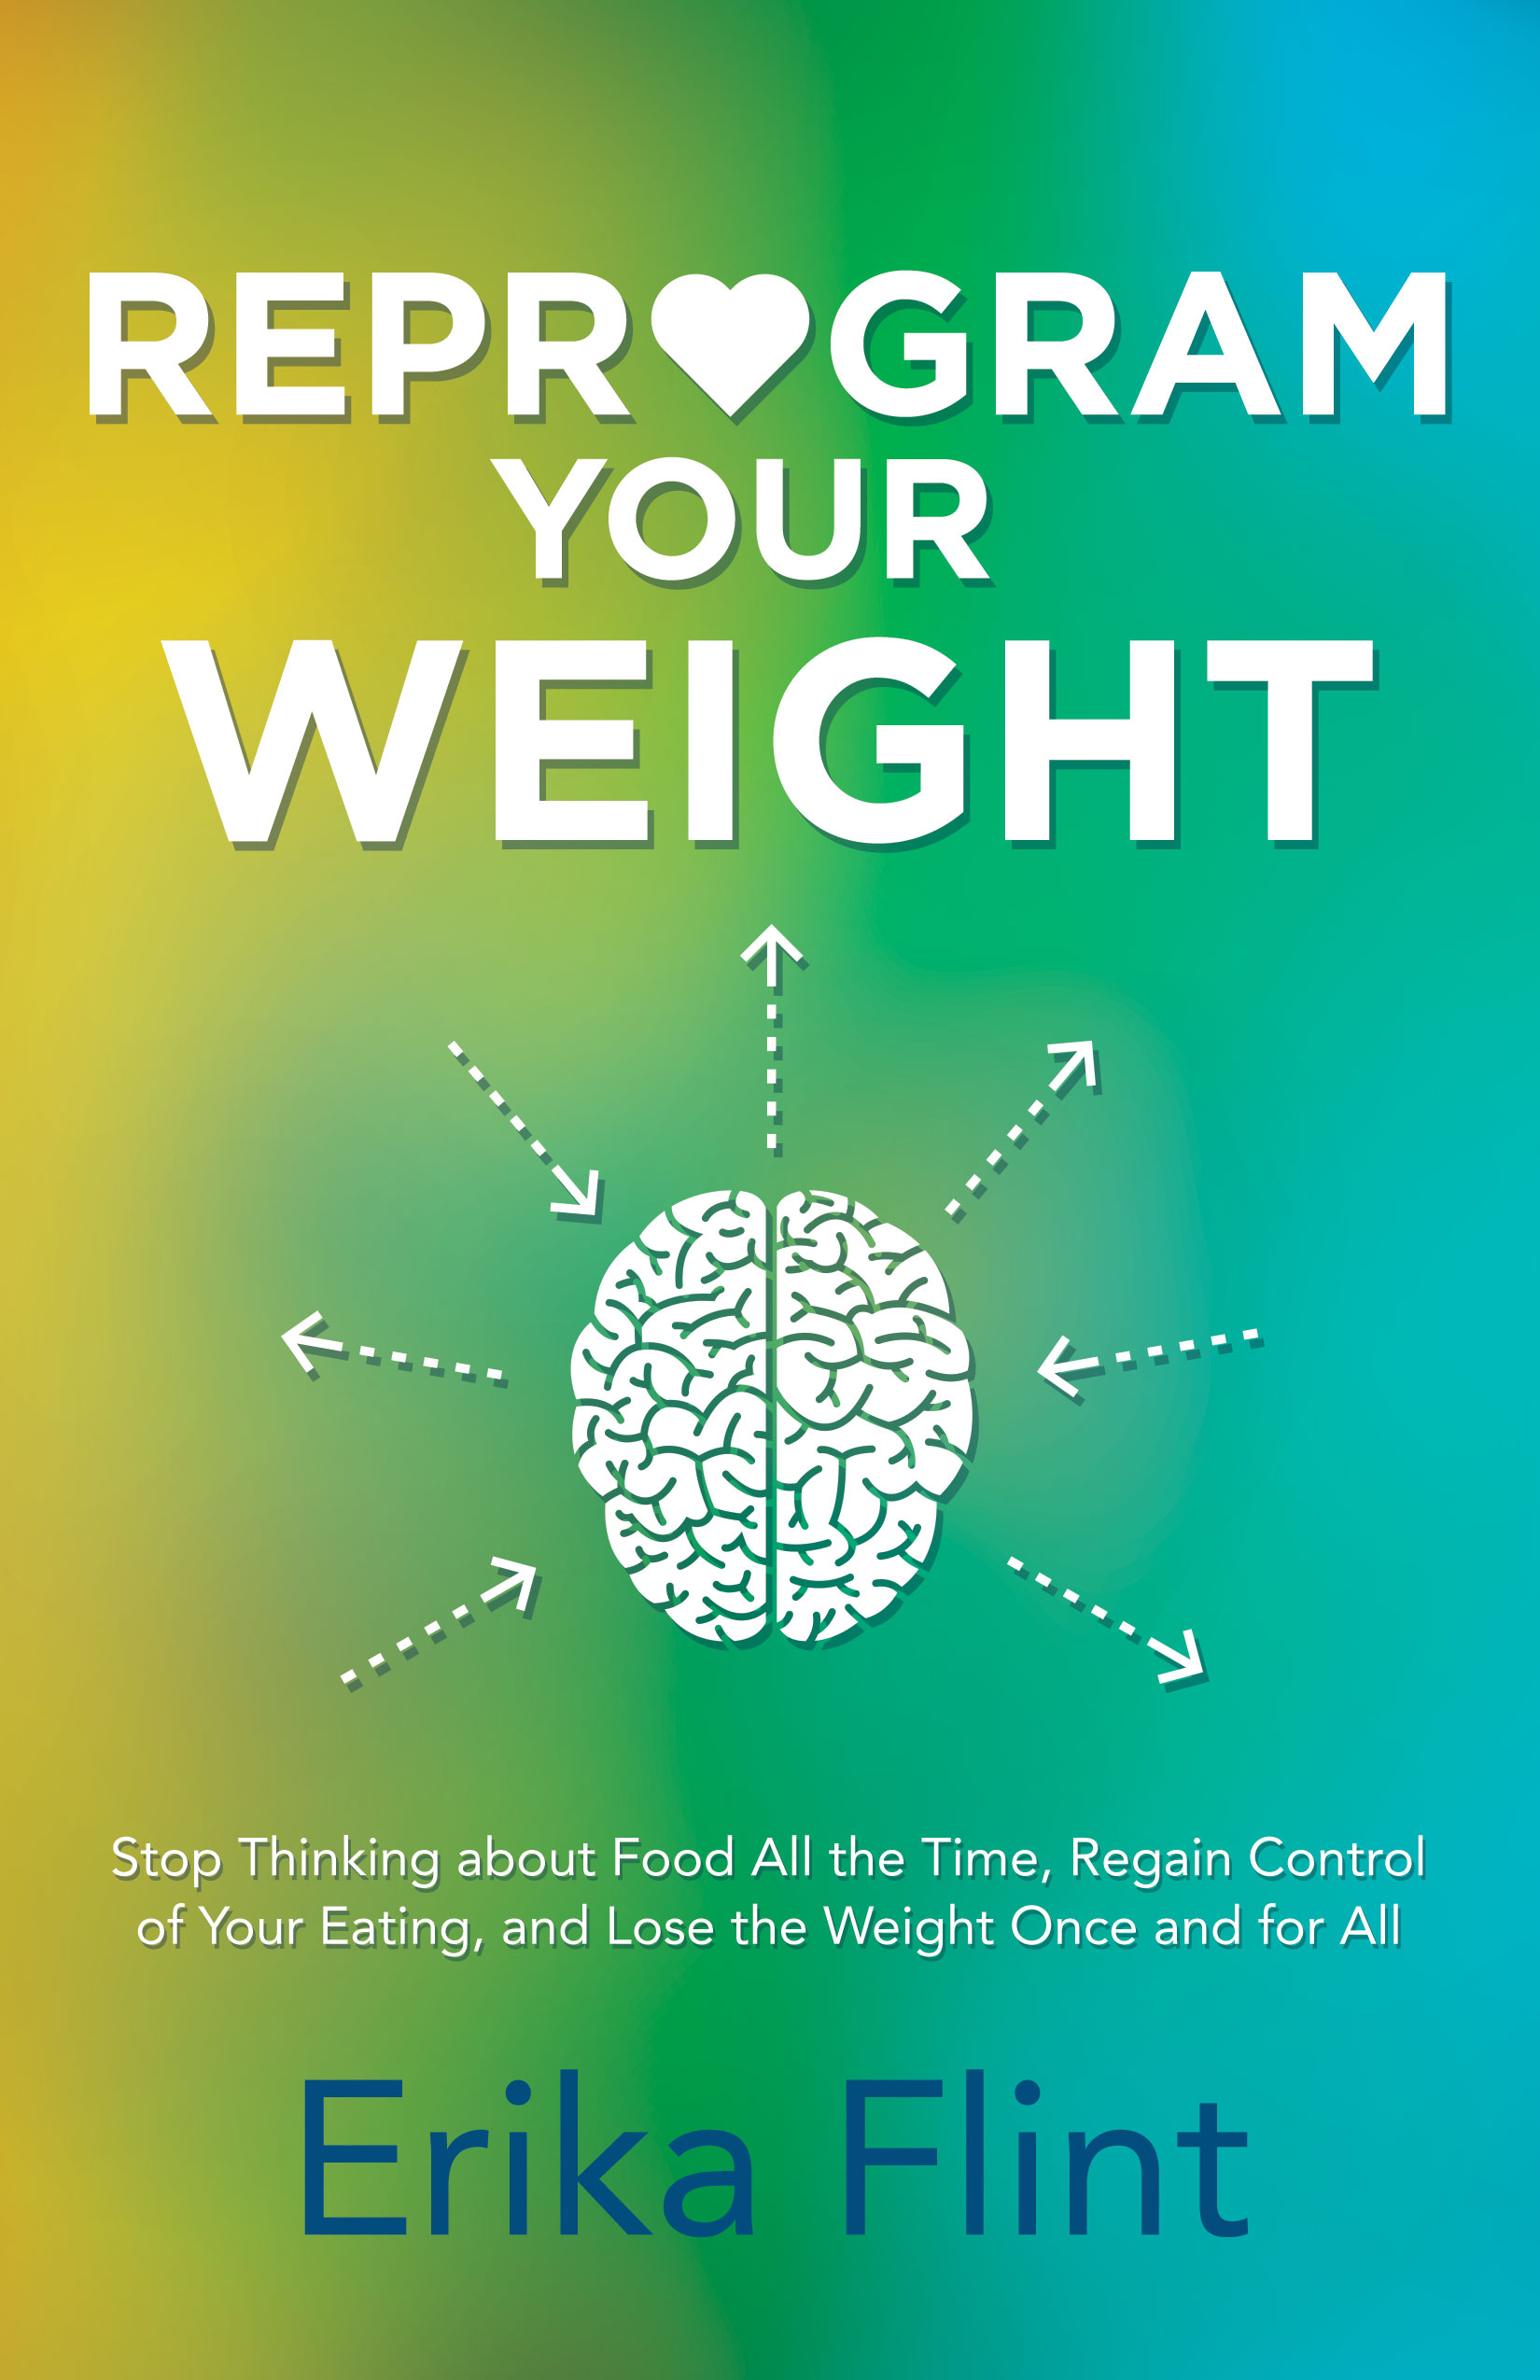 Reprogram Your Weight : Erika's best-selling book is now in bookstores across Northern America.